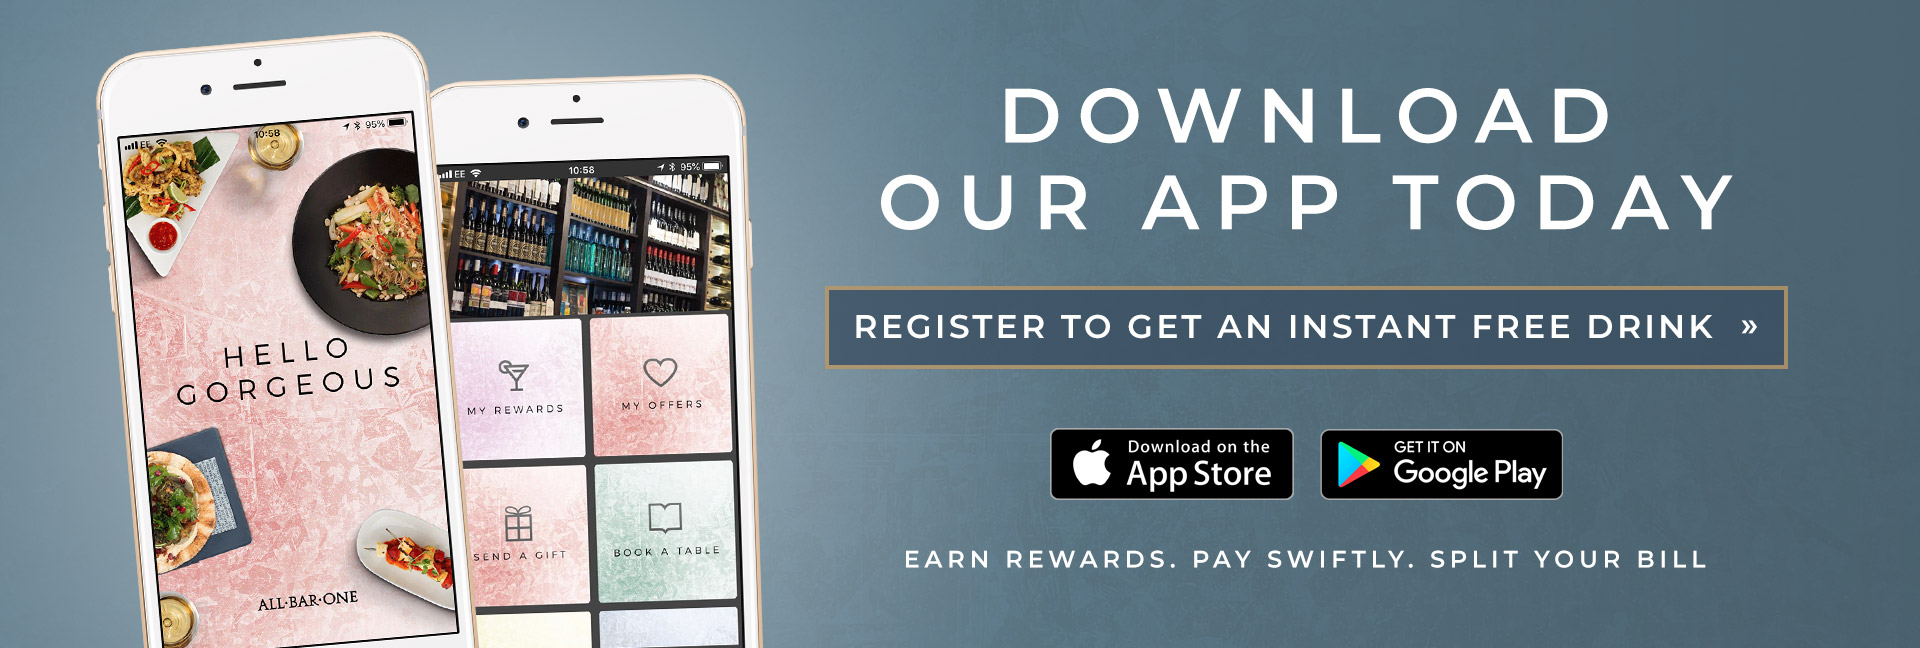 Download the All Bar One App today